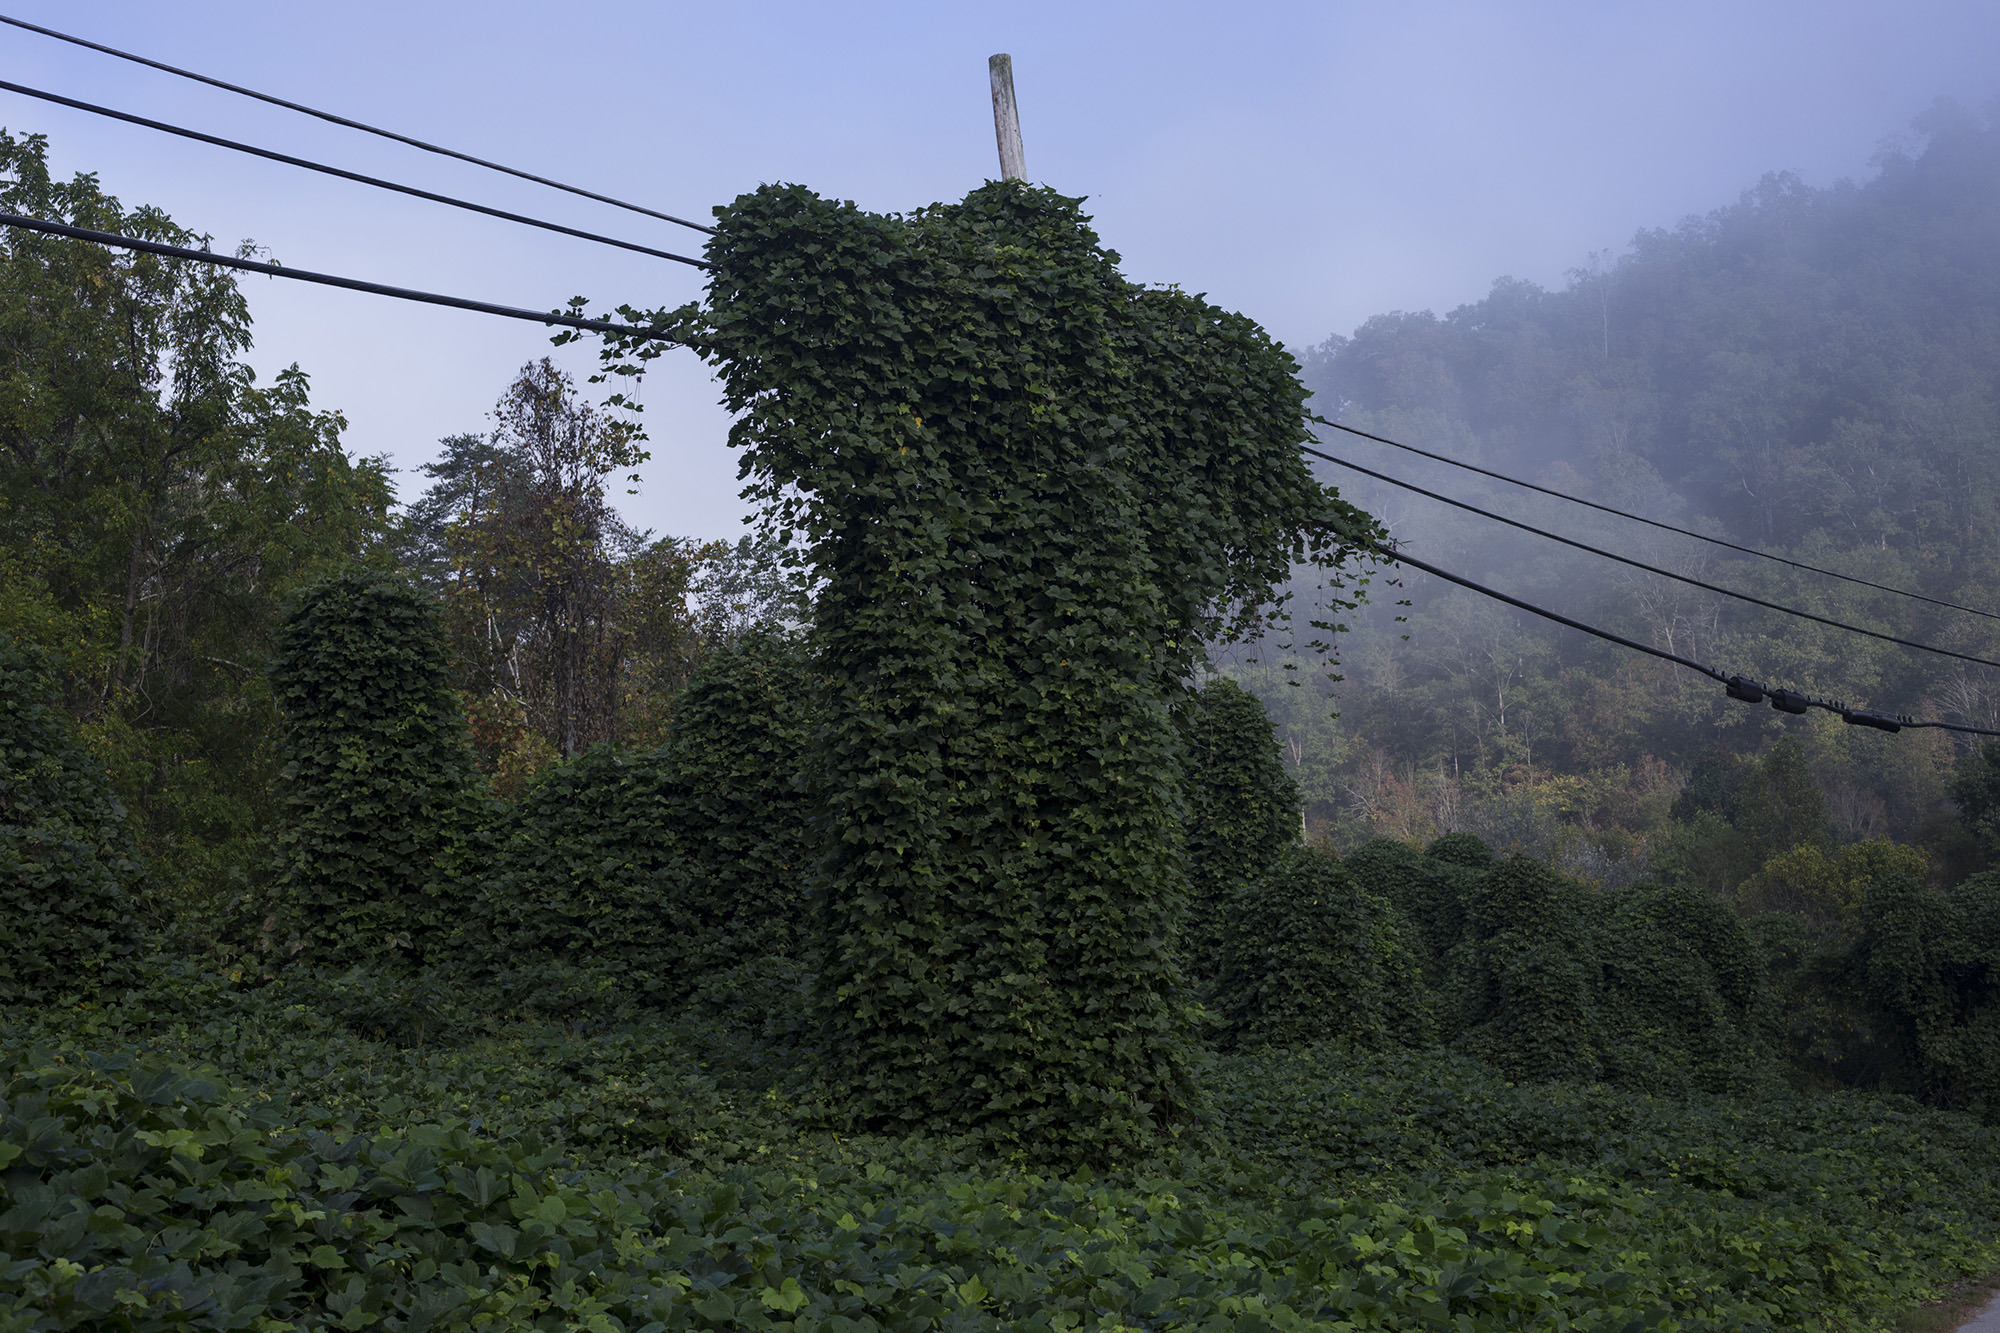 An electrical pole is over powered by kudzu in Hi Hat, Ky., on Friday, September 22, 2017. (Brittany Greeson/GroundTruth)